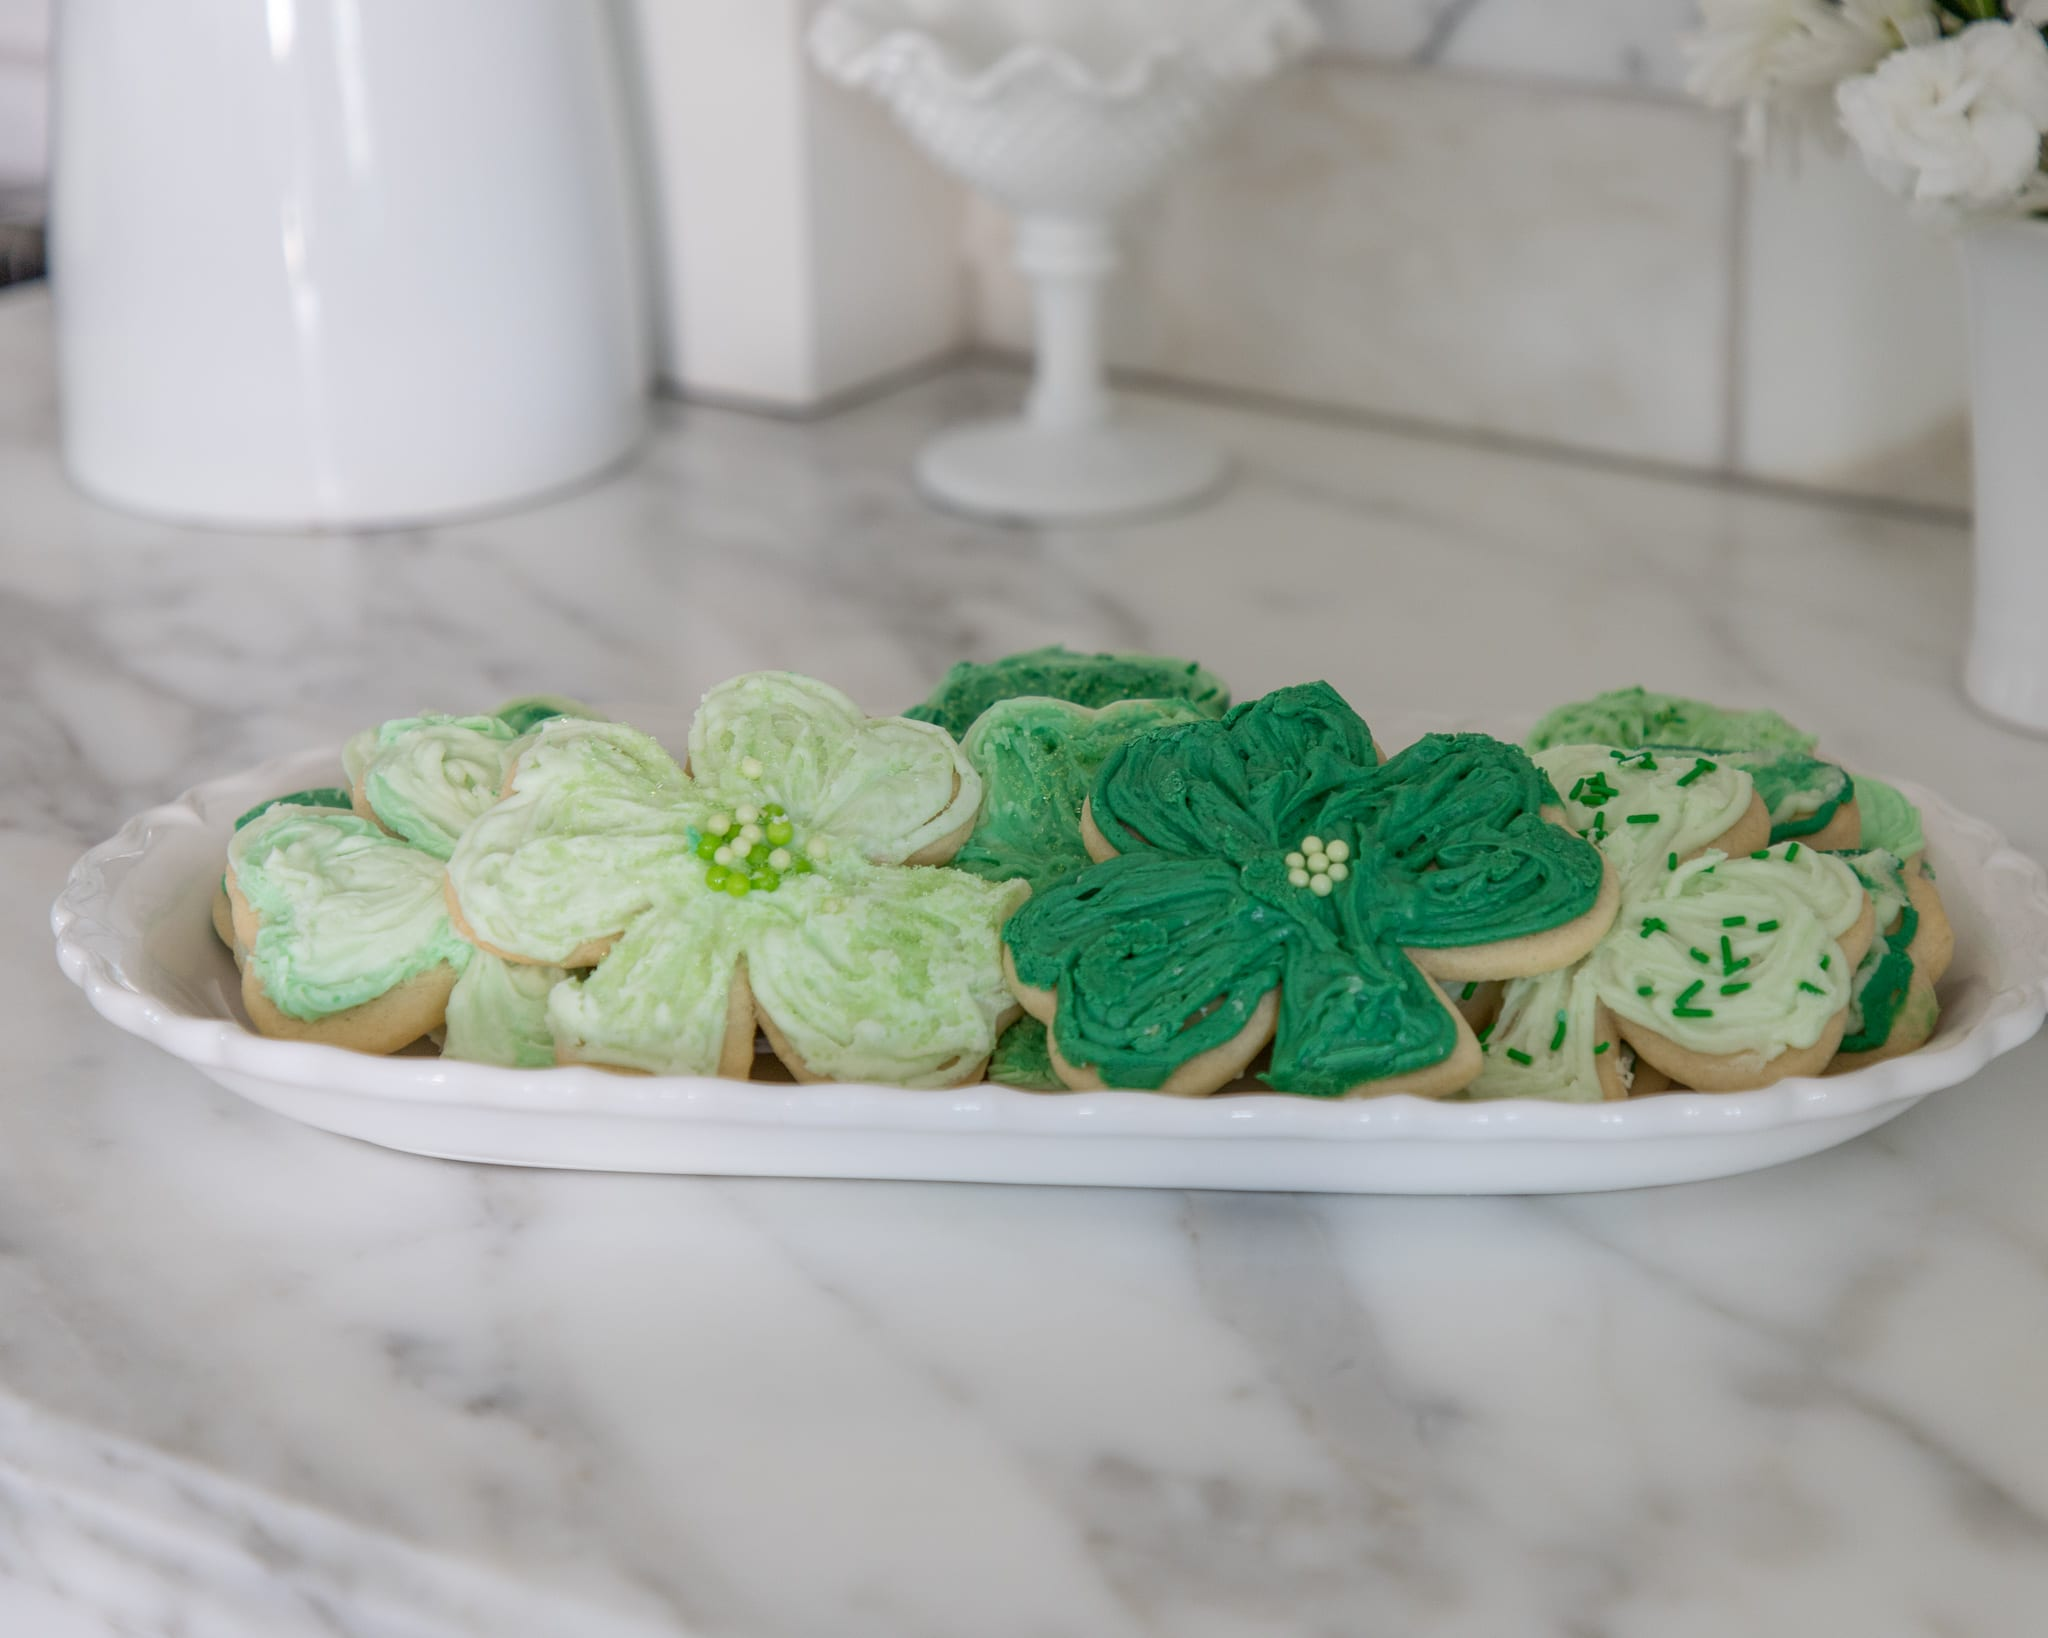 hot cocoa bar, hot chocolate bar, tablescape, spring decor, st. patricks day decor, saint patricks day, green and gold, green decor, home decor, dining room decor, dining room shamrock sugar cookies